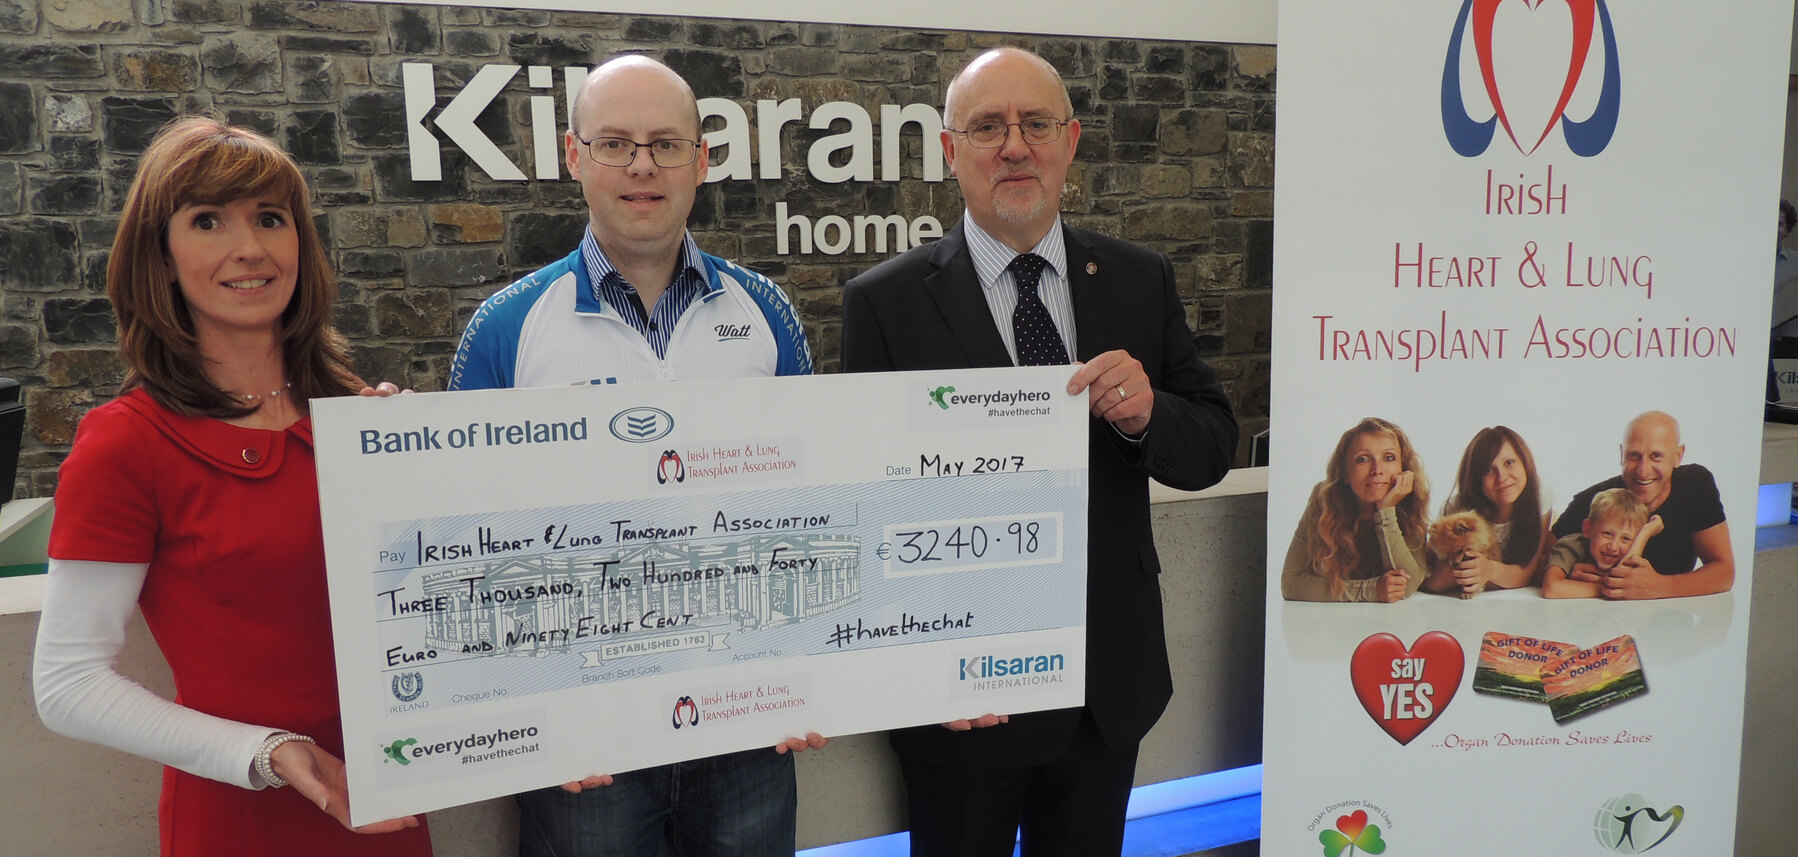 Ken Mulkerrins of Kilsaran Raises over €3,200 for IHLTA